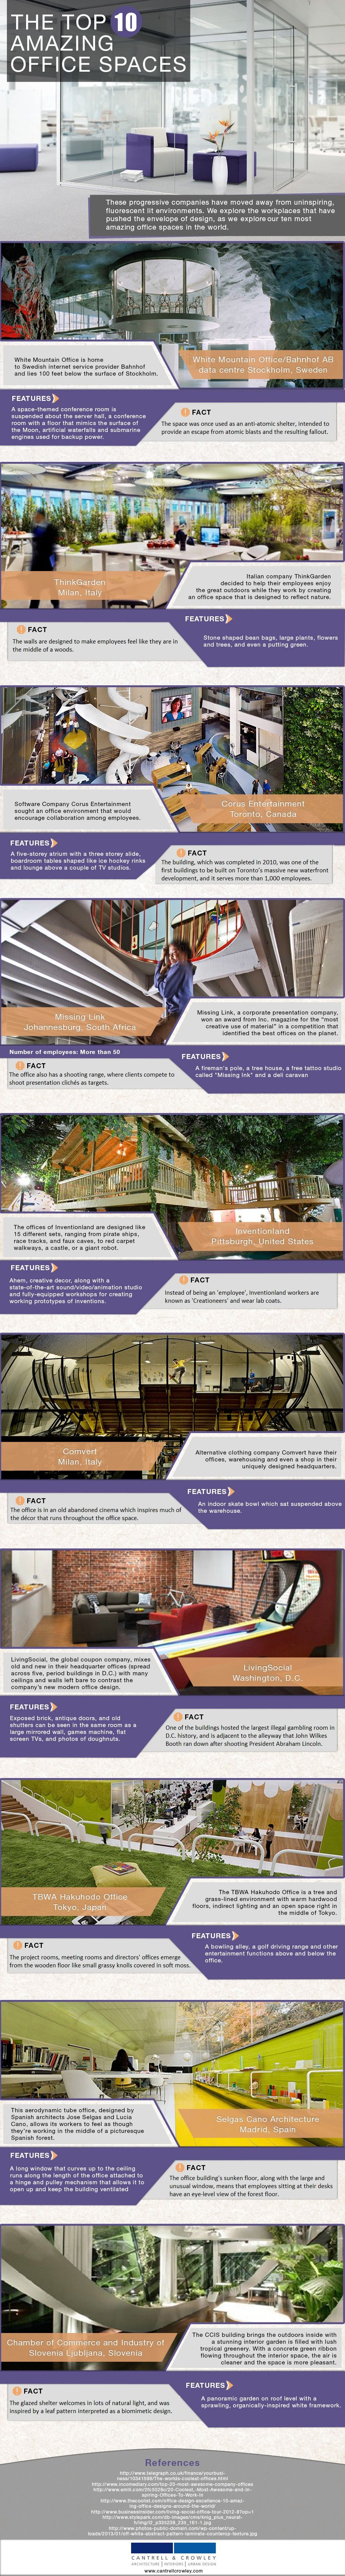 Amazing-Office-Spaces-Infographic